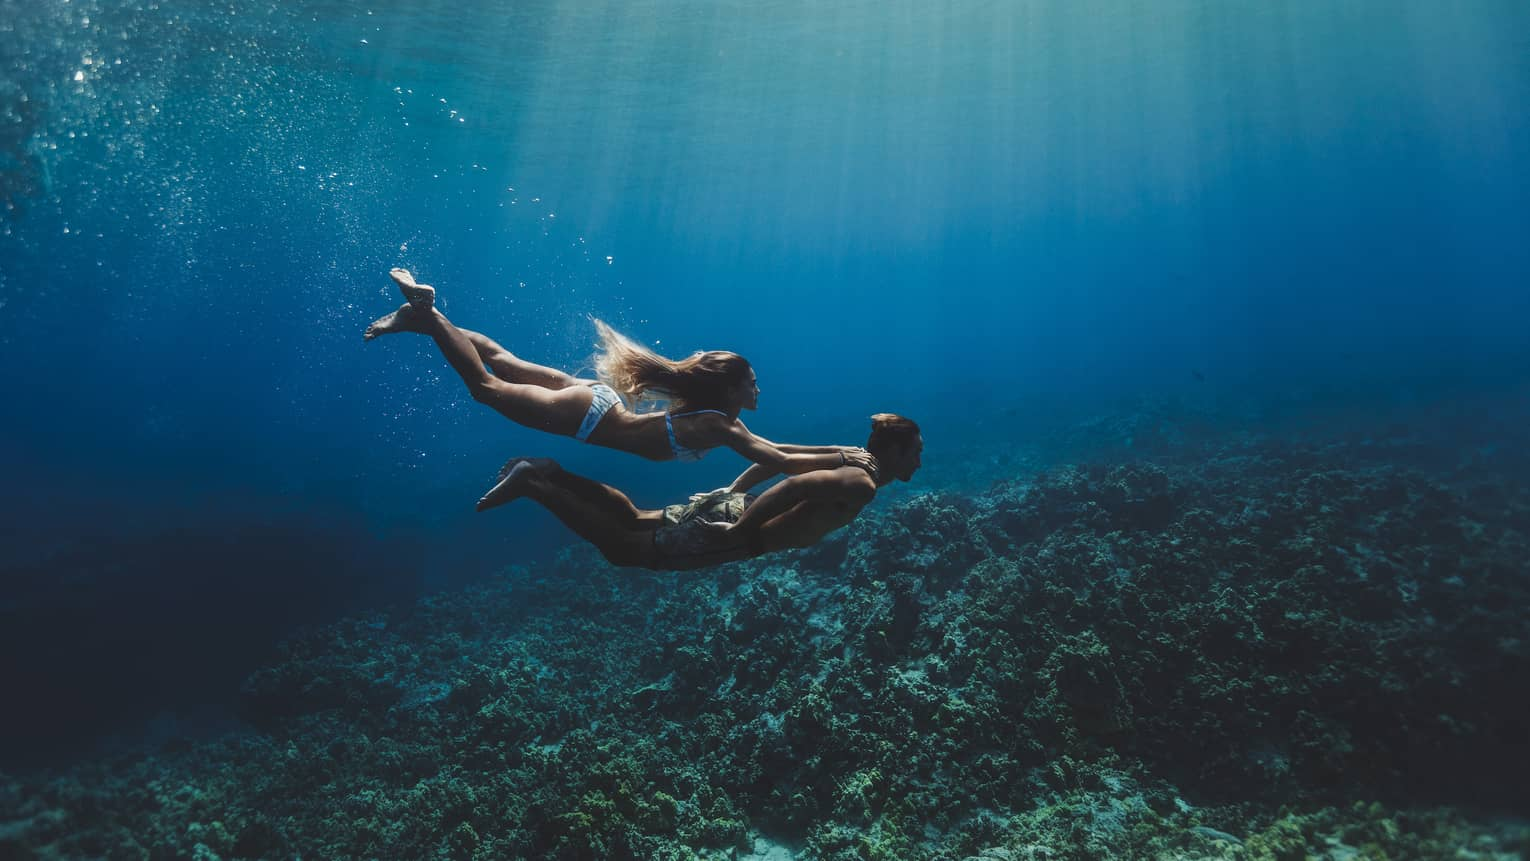 A man and woman swim underwater in the ocean over a coral reef.